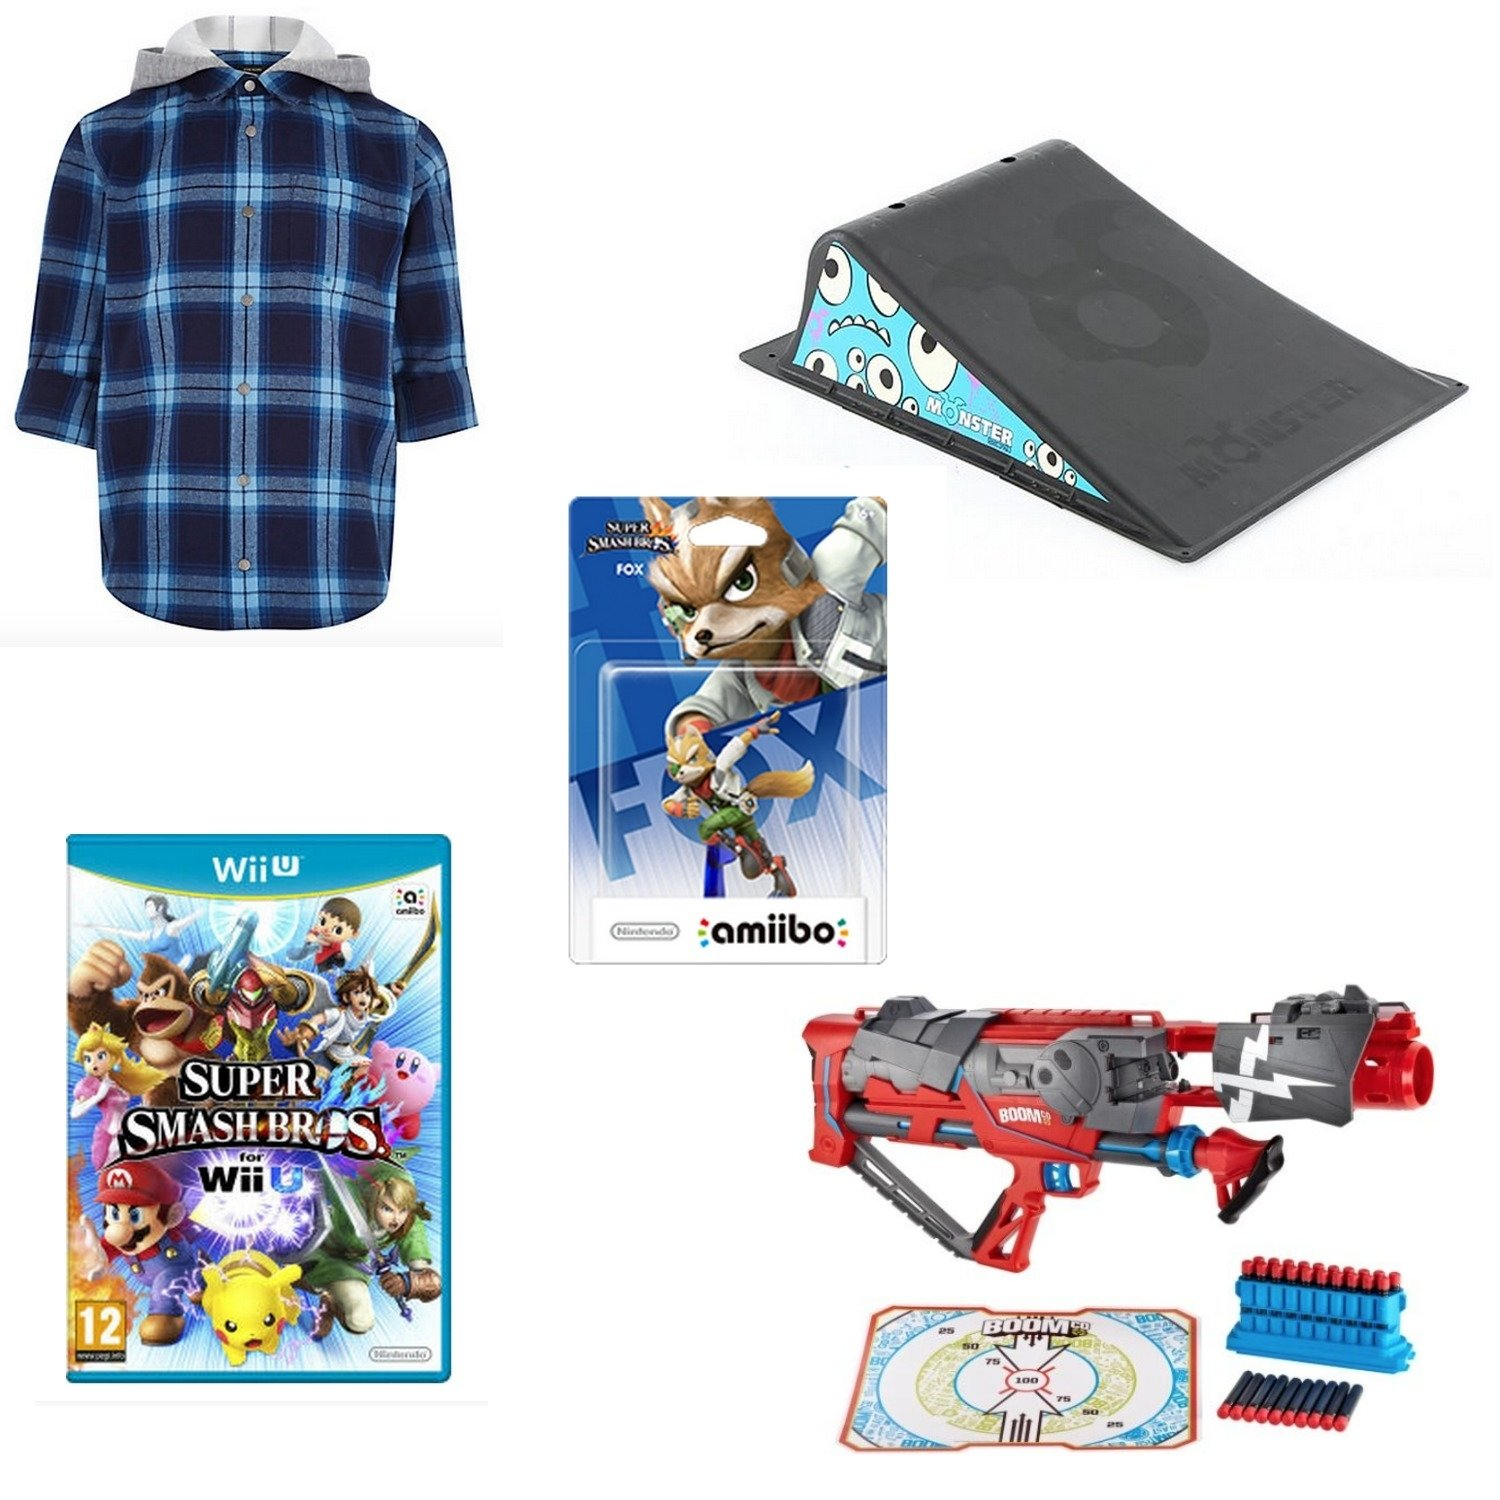 10 Ideal Christmas Gift Ideas For 12 Year Old Boy christmas gifts for 10 year old boys family four fun 9 2020